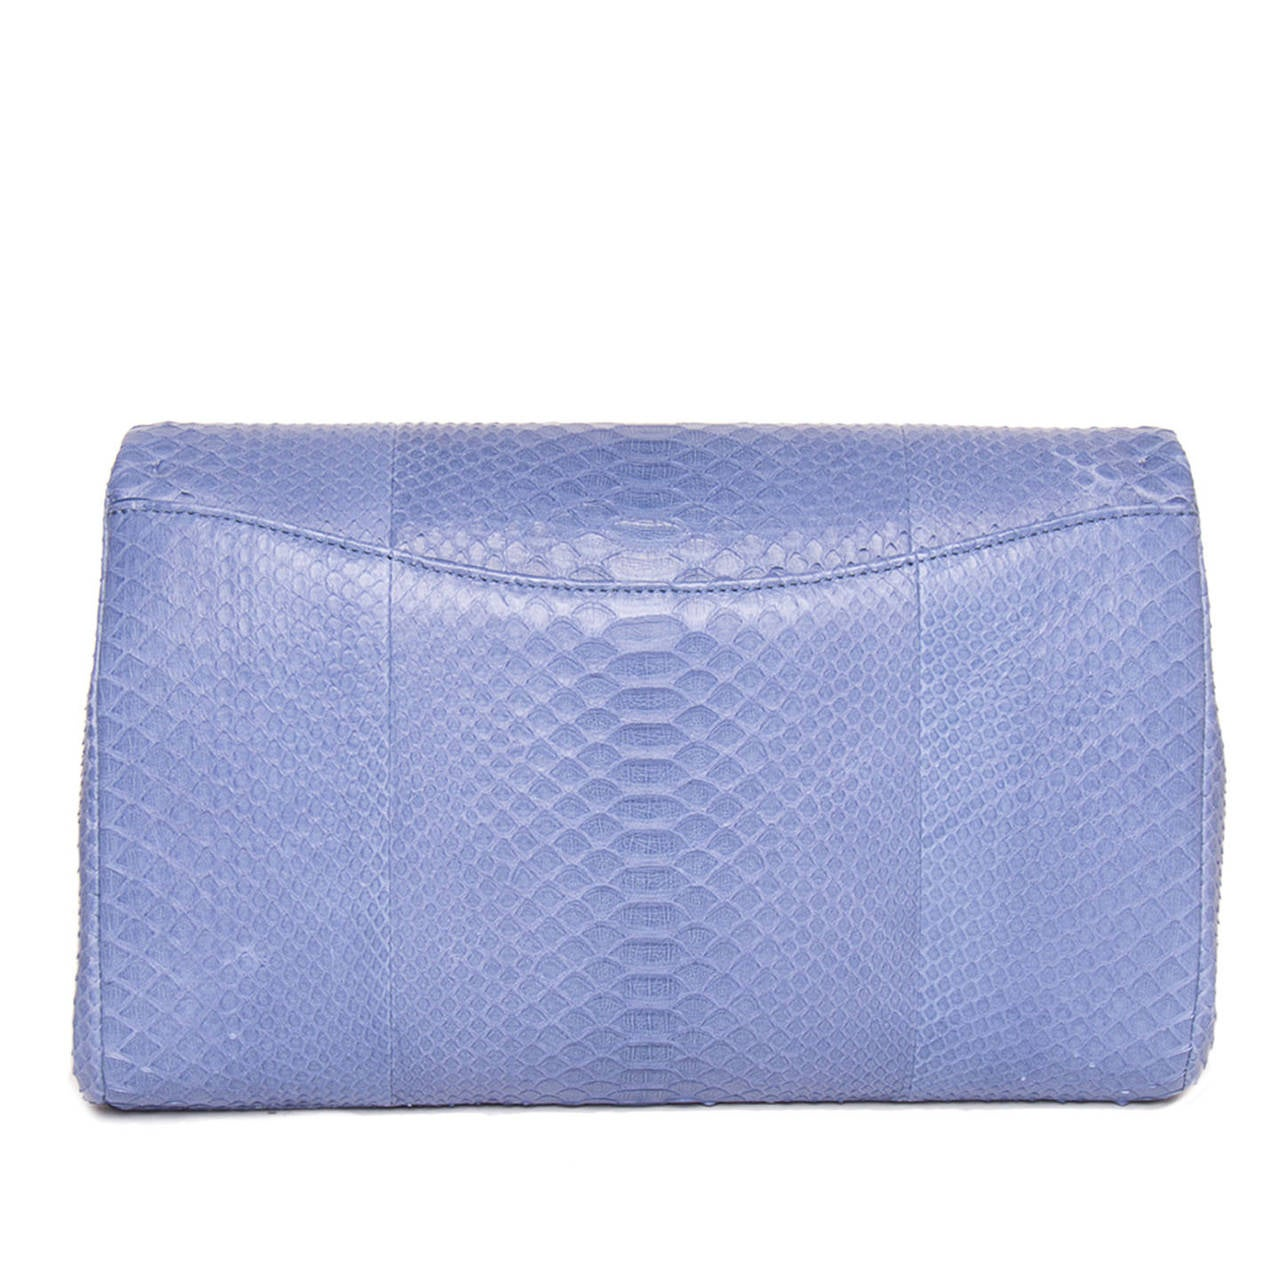 Purple Chanel Periwinkle Python Small Clutch Bag With Strap For Sale